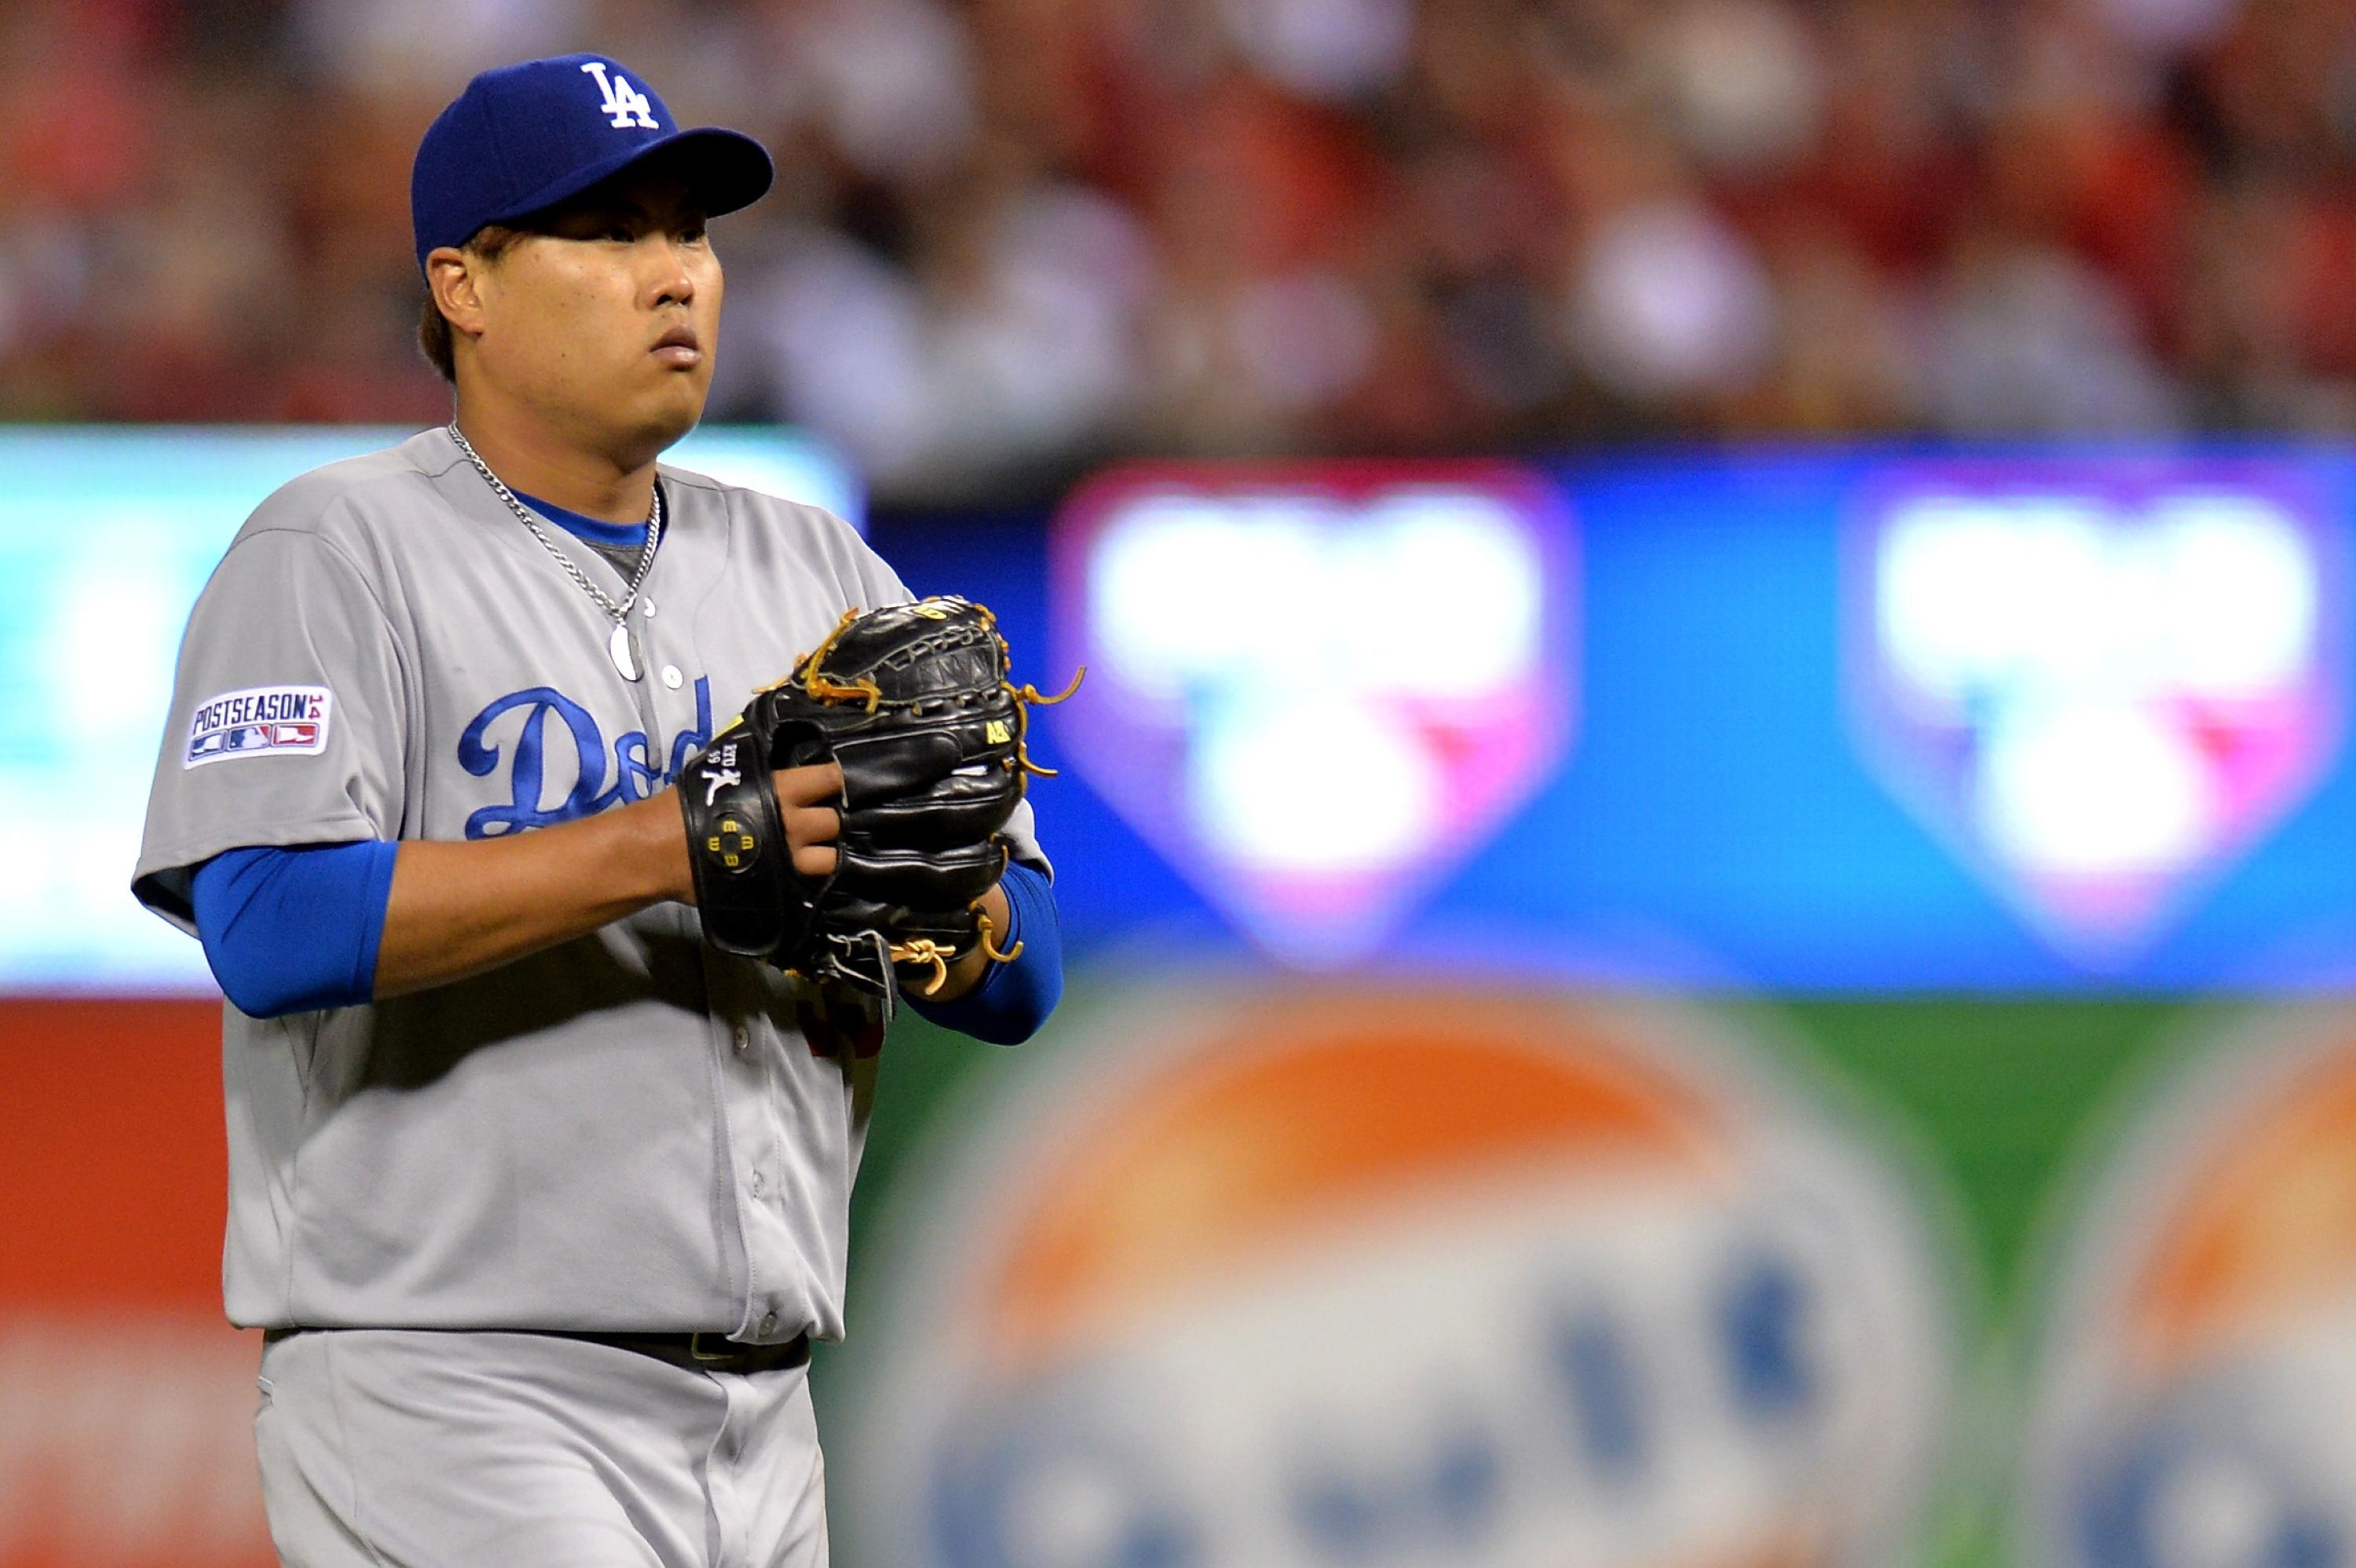 Hyun-jin Ryu pitched with torn labrum for two years